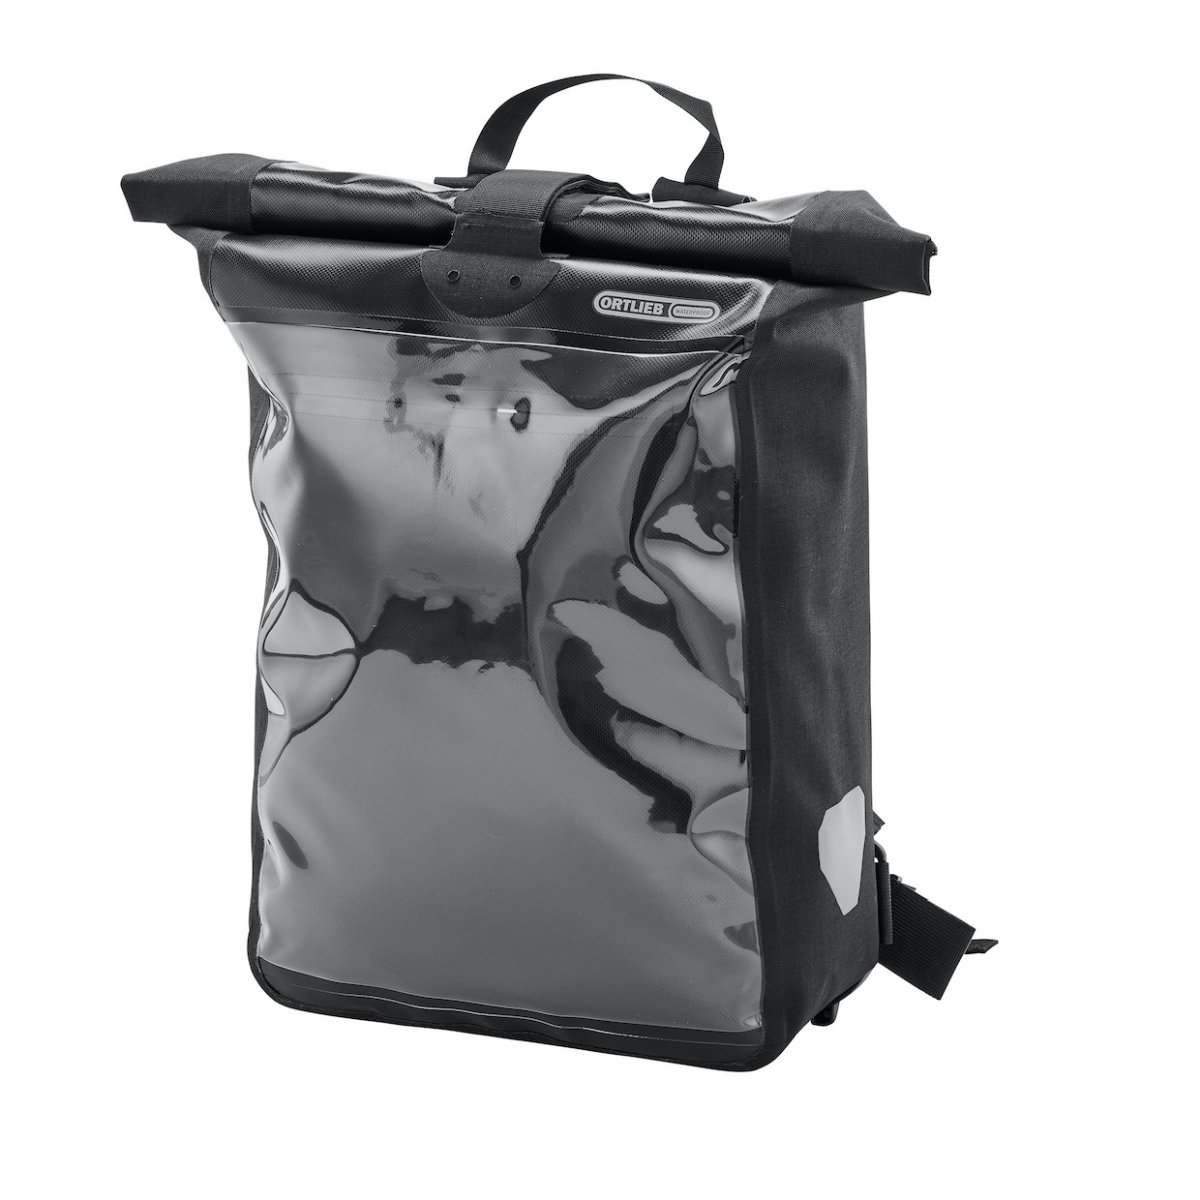 Ortlieb Messnger-Bag Pro